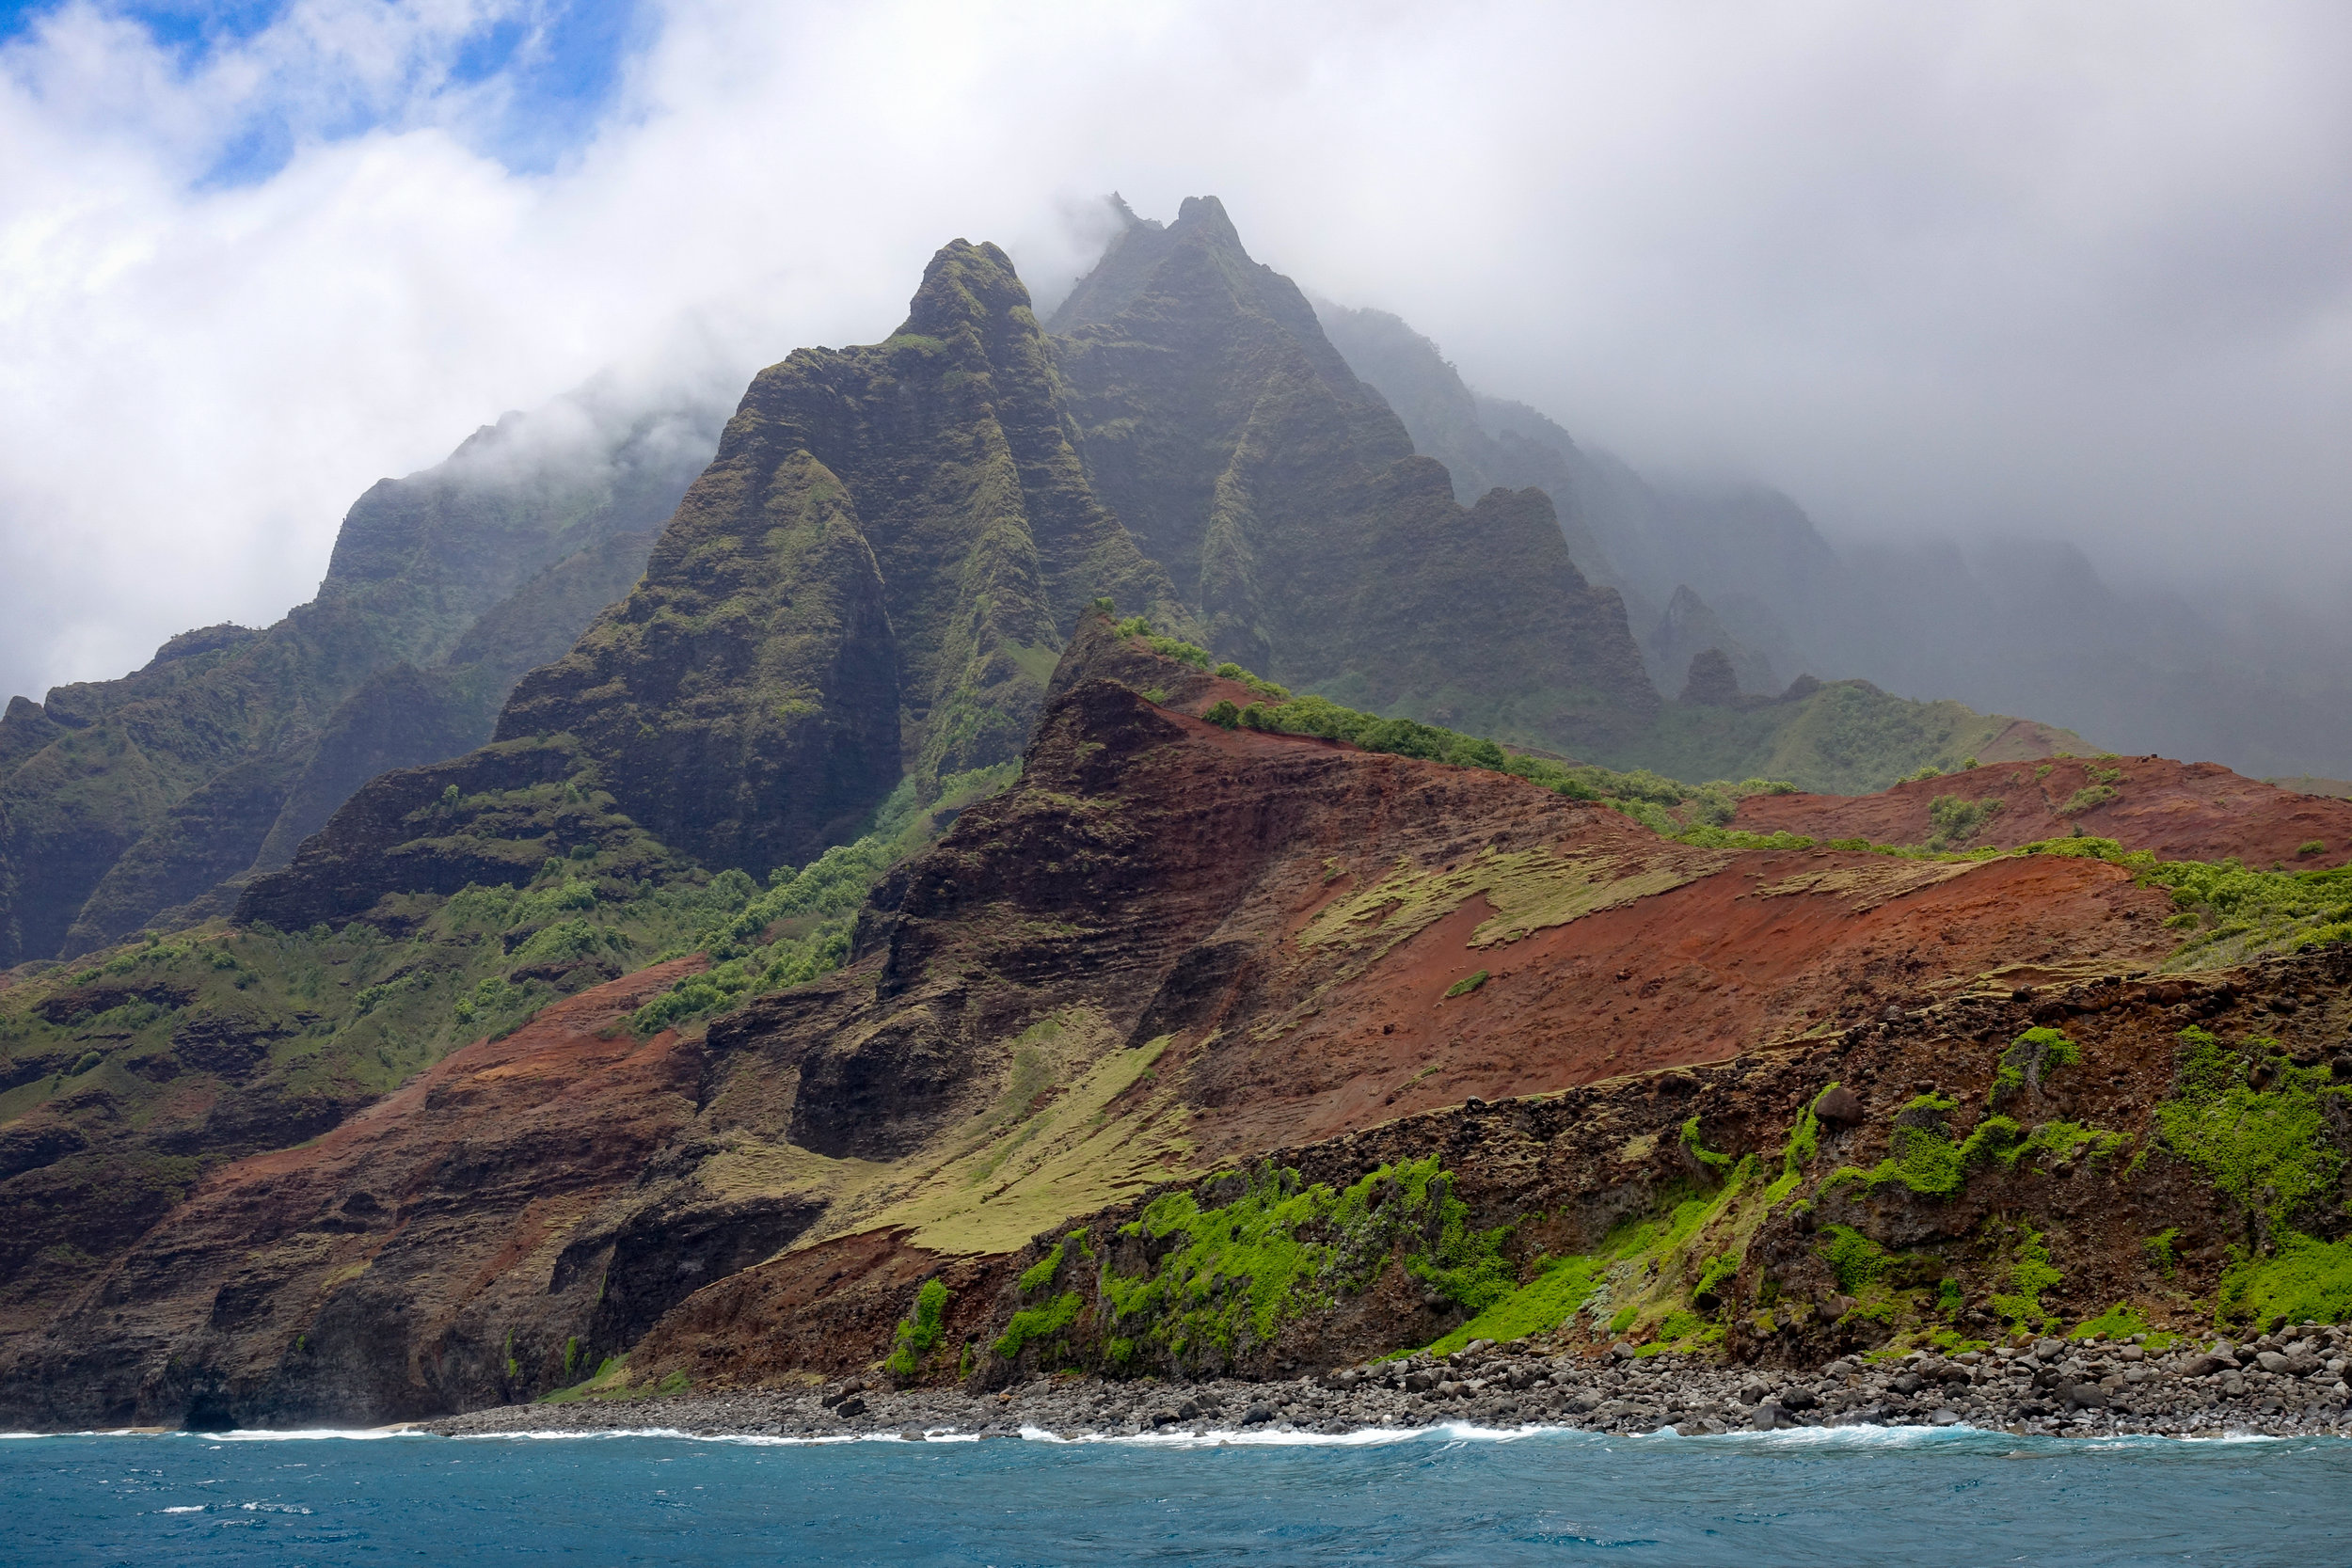 The Na Pali Coast in Hawaii